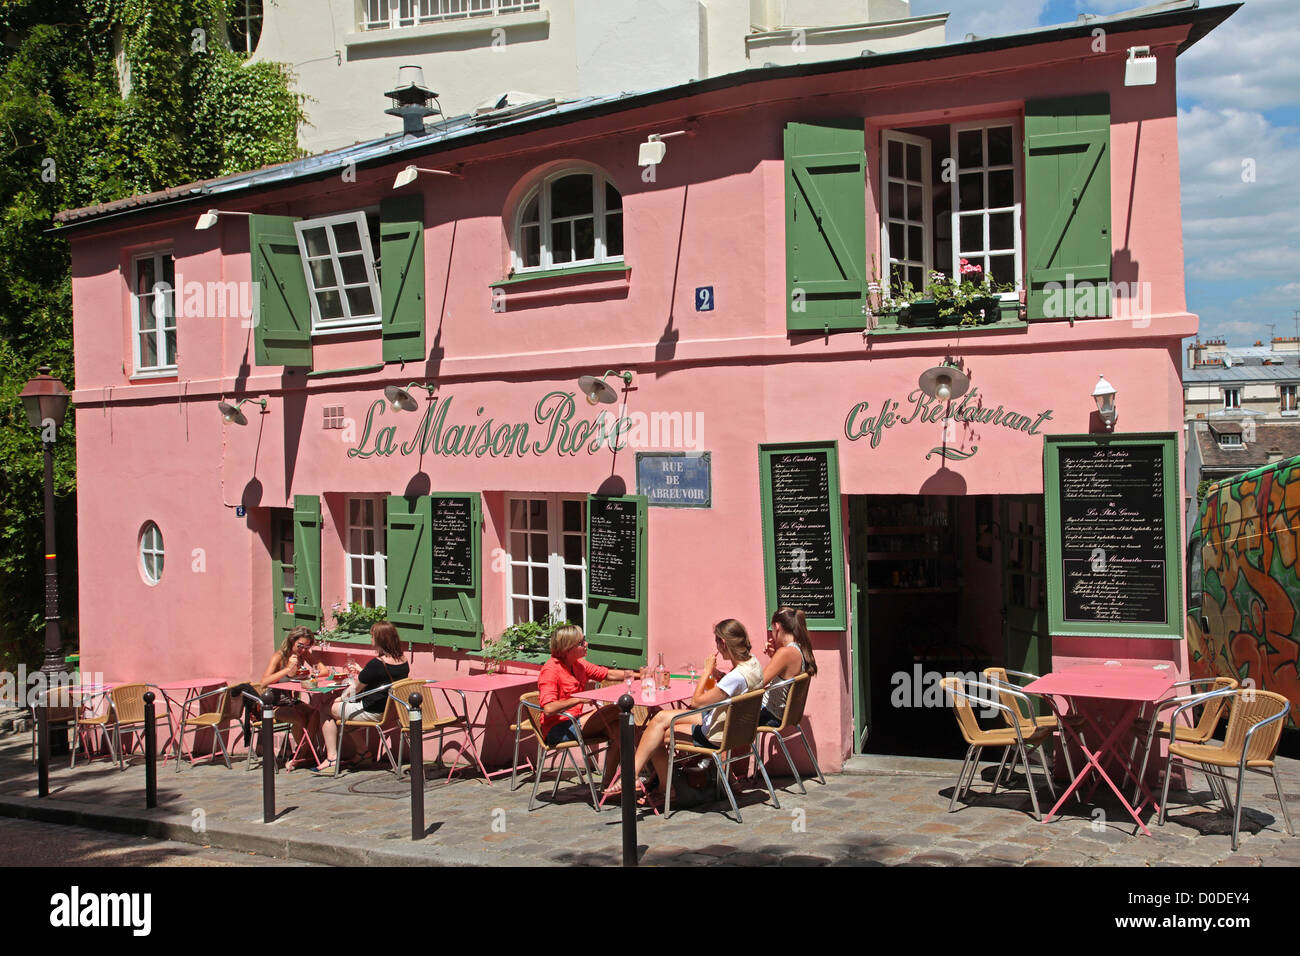 The terrace of the maison rose cafe restaurant on the for Restaurant miroir montmartre